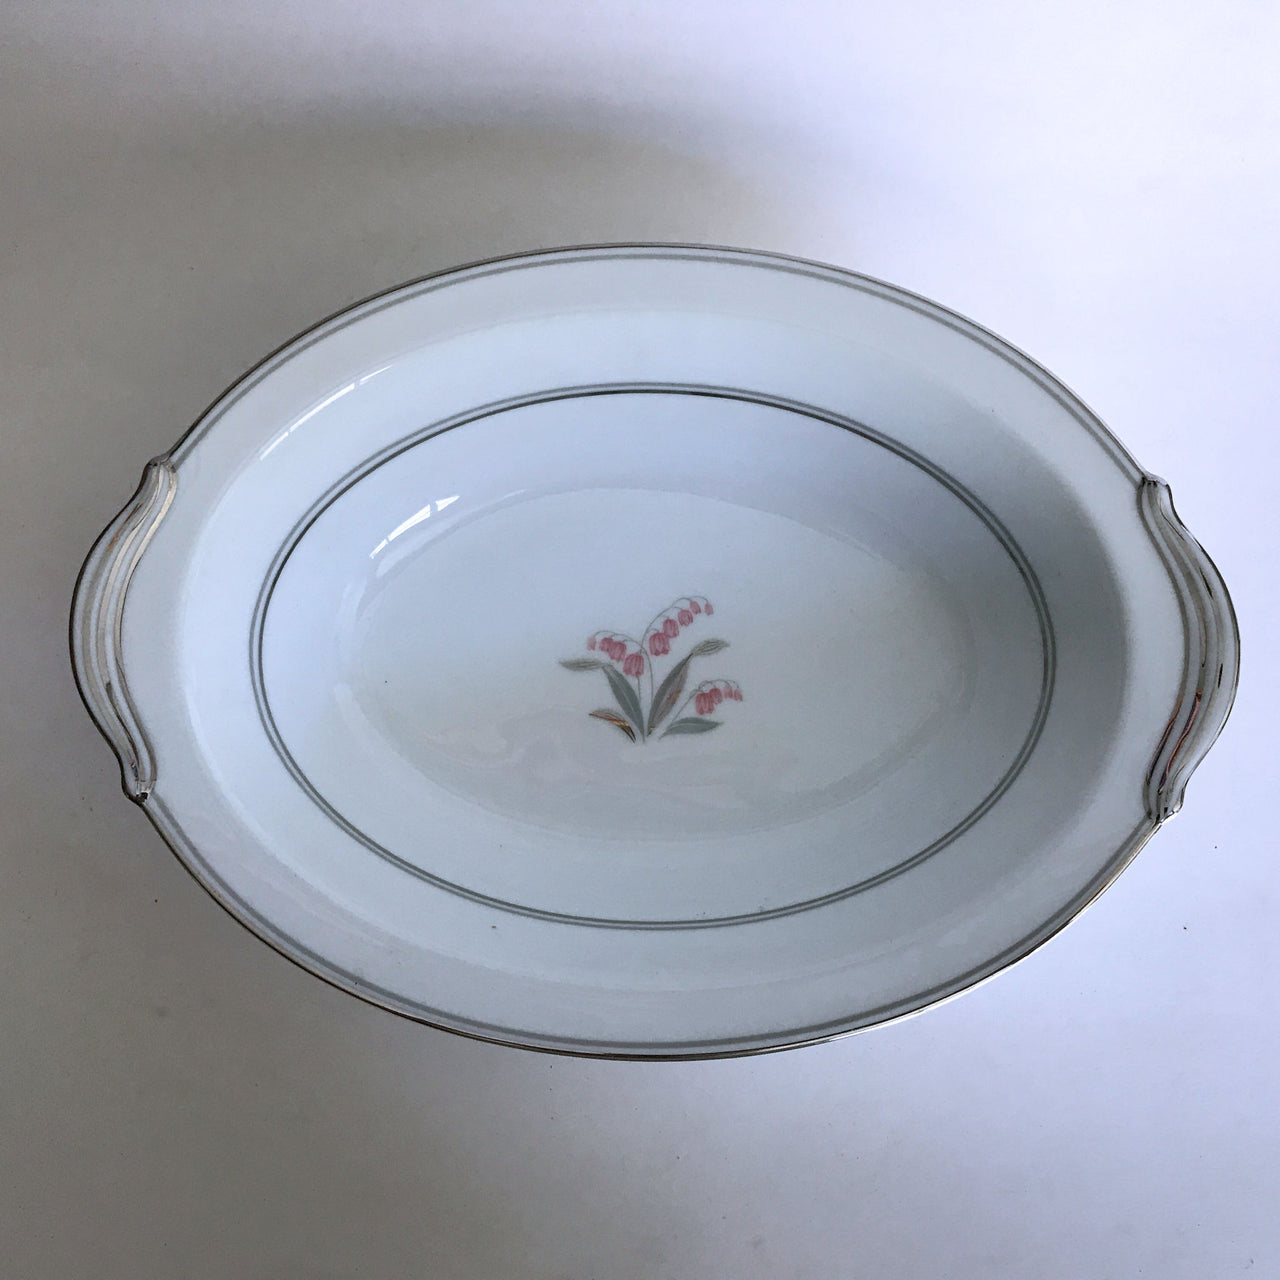 Vintage Noritake Crest 5421 Serving Bowl Pink Flower Green Silver Stems